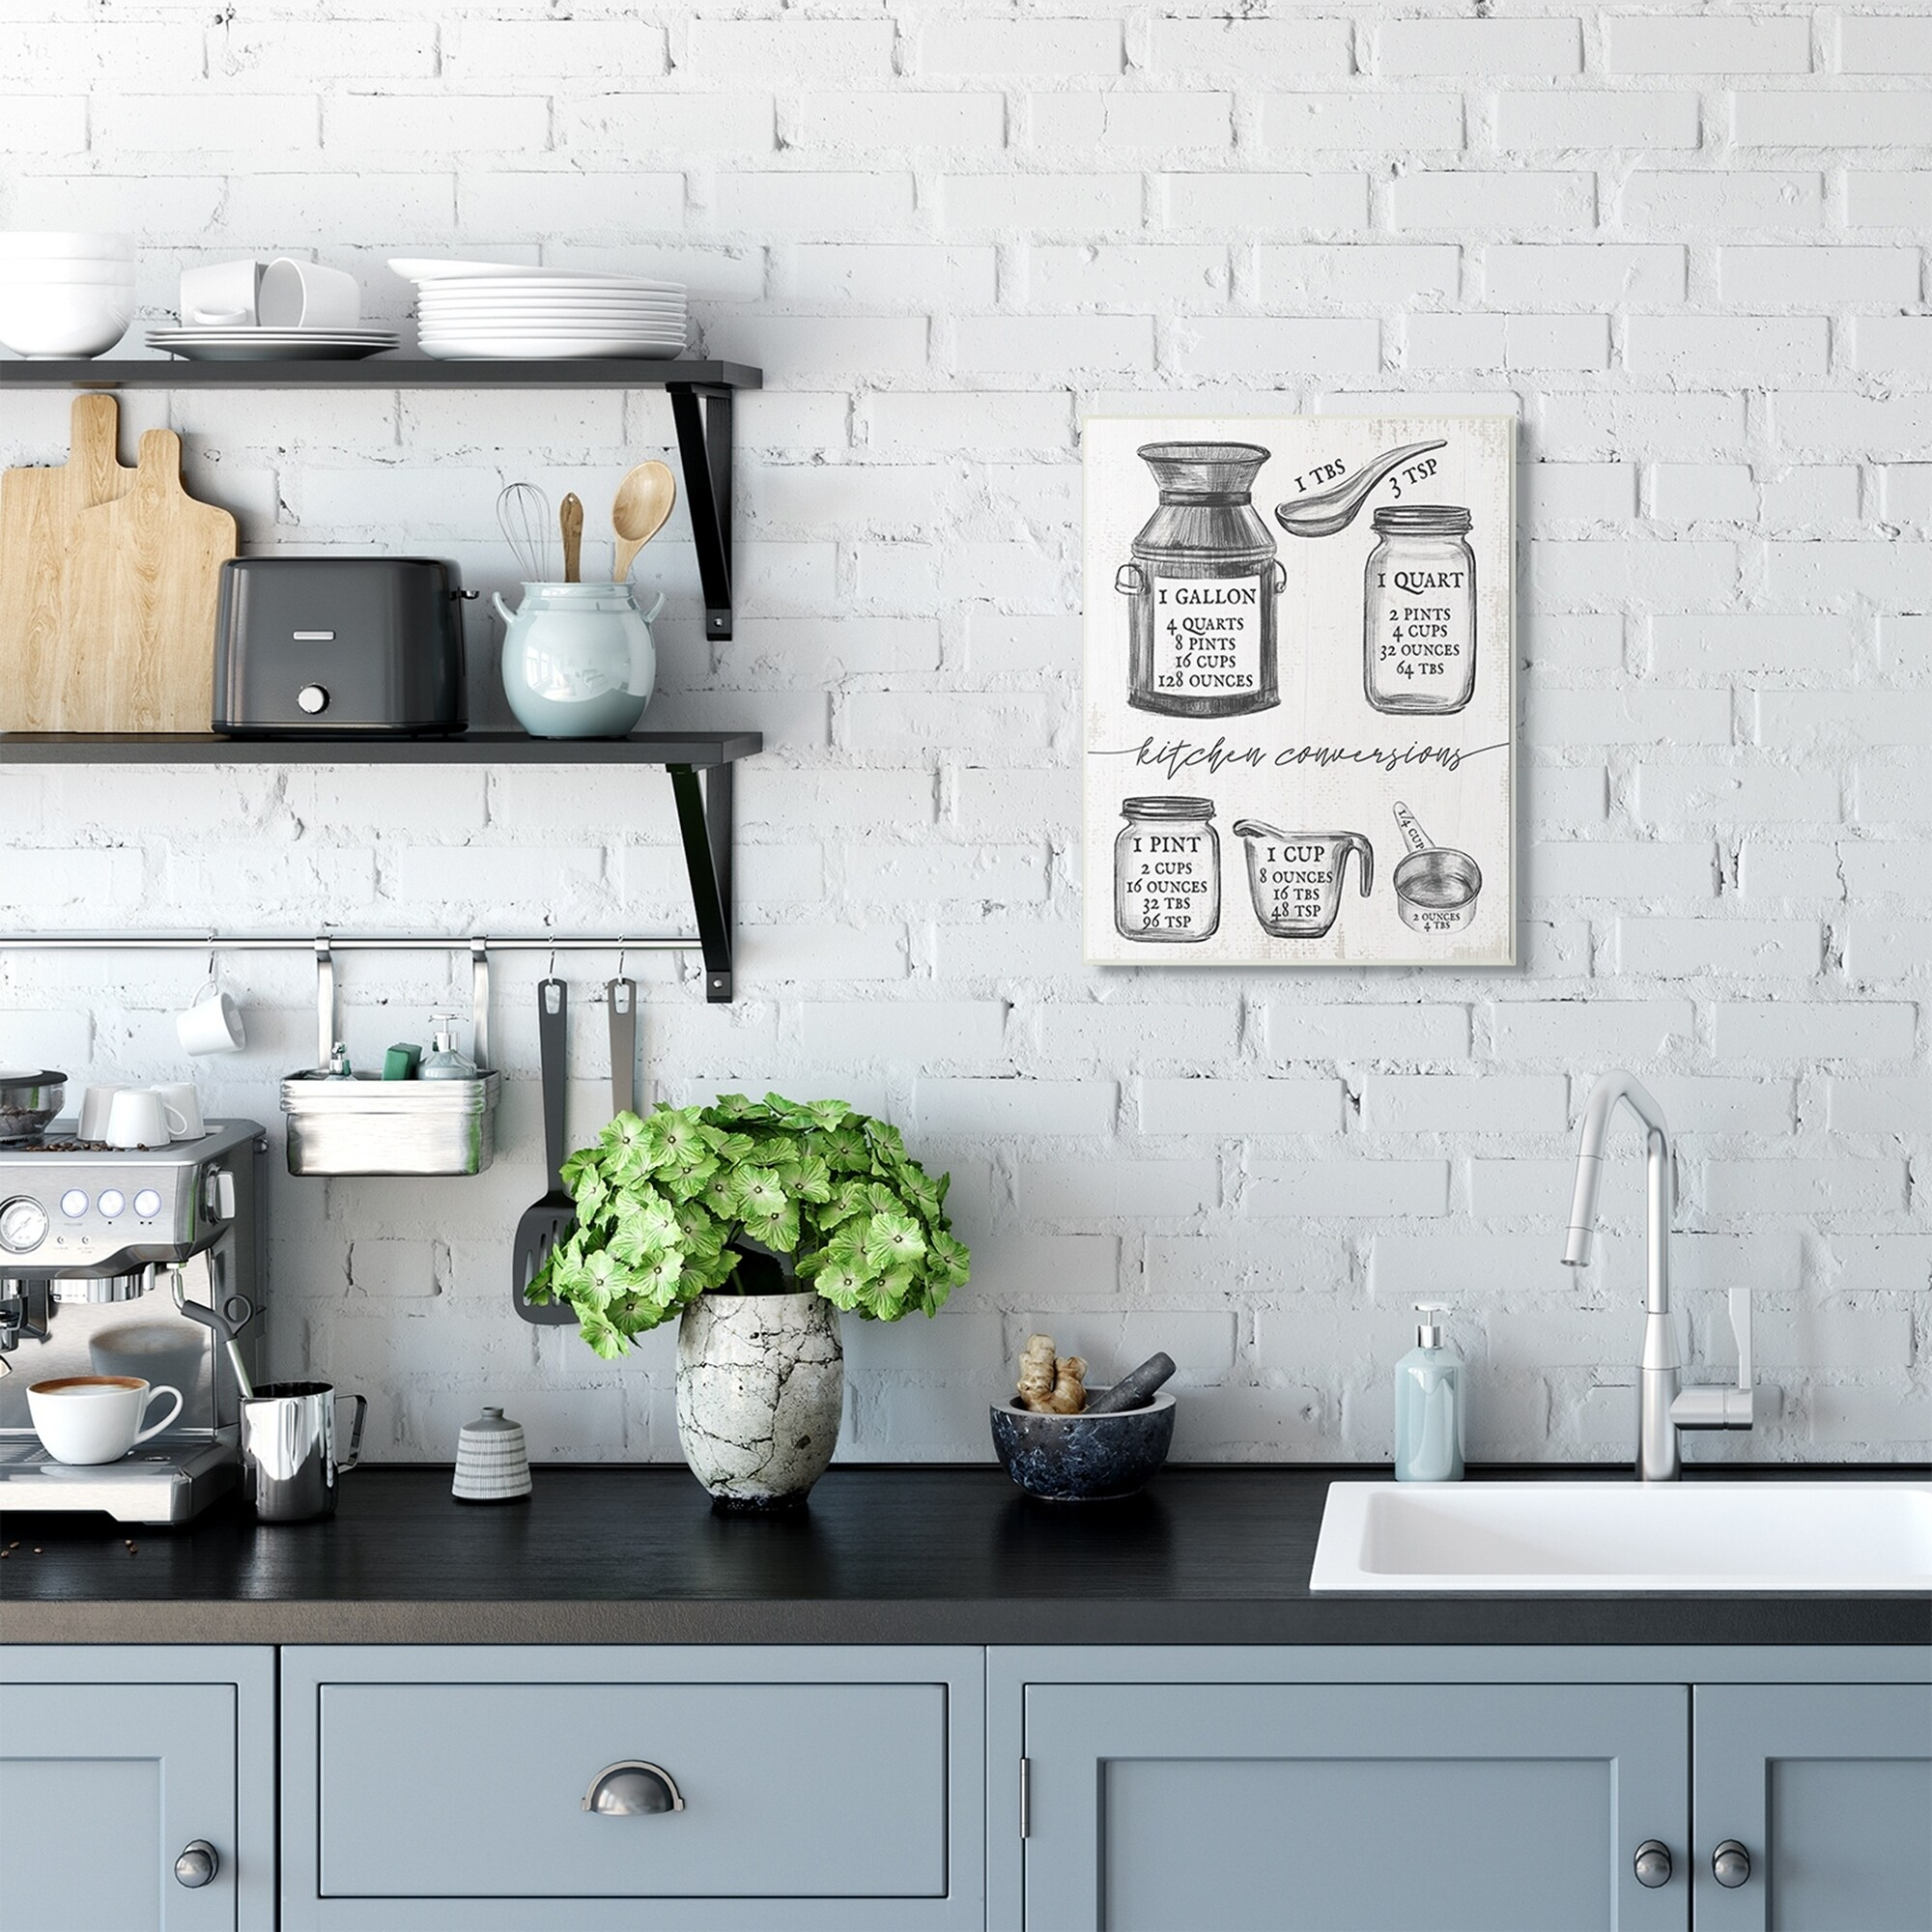 Stupell Industries Kitchen Conversion Chart Neutral Grey Word Drawing Design Wood Wall Art Proudly Made In Usa Overstock 29740057 10 X 15